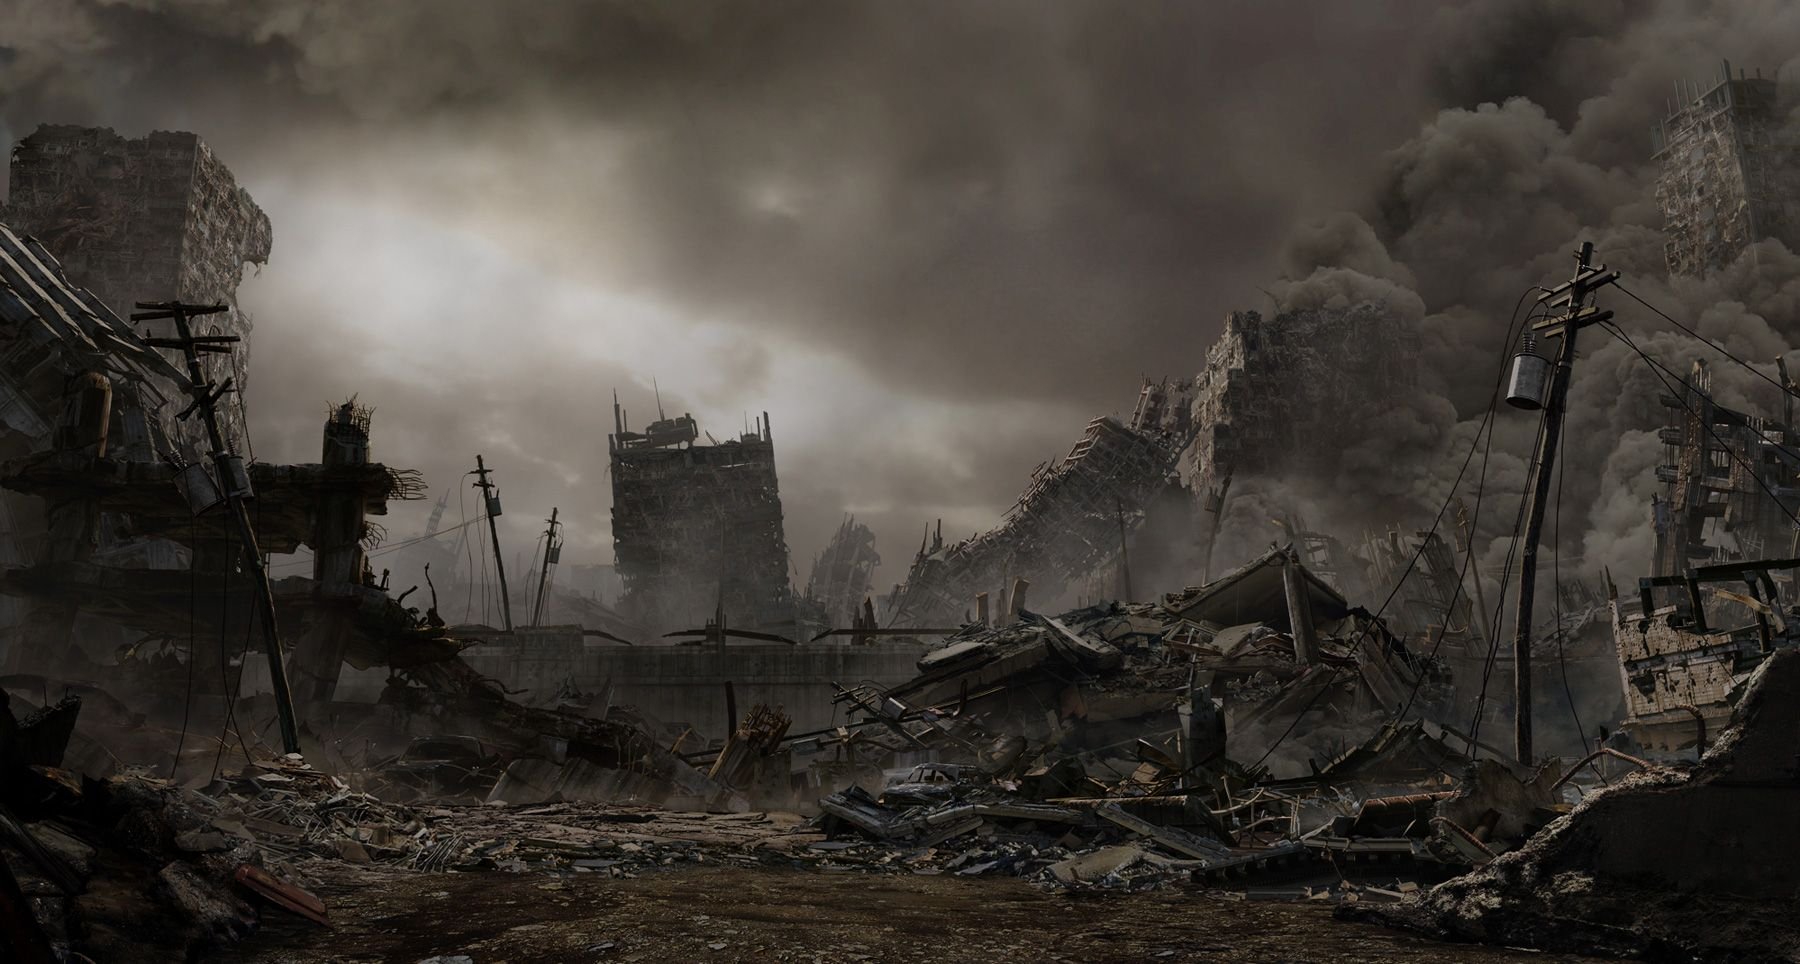 apocalyptic and post apocalyptic fiction essay The end is nigh, and filled with the usual mutants, biker gangs, and radioactive ruins the old world may have been wiped away in the ashes of nuclear fire, but the cliches of the genre endure.